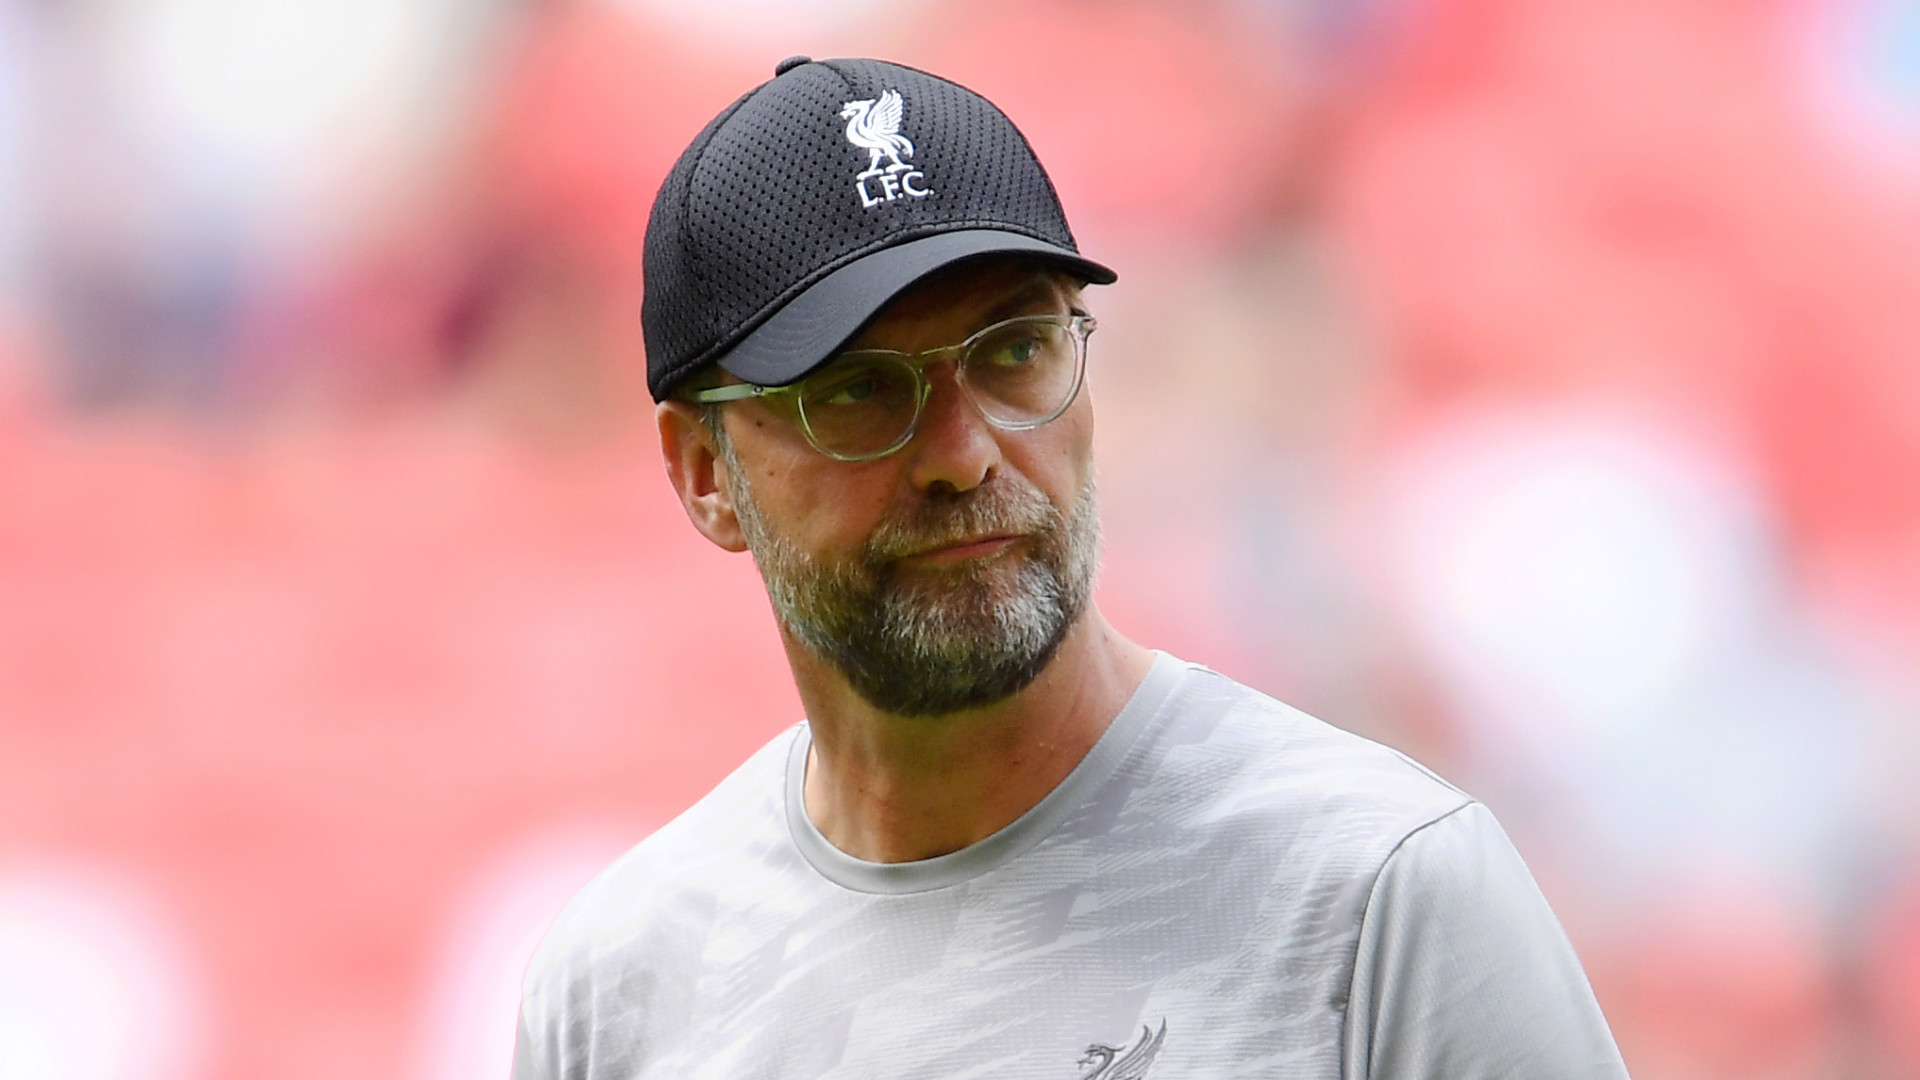 Jurgen Klopp opens up on Liverpool FC's summer transfer business